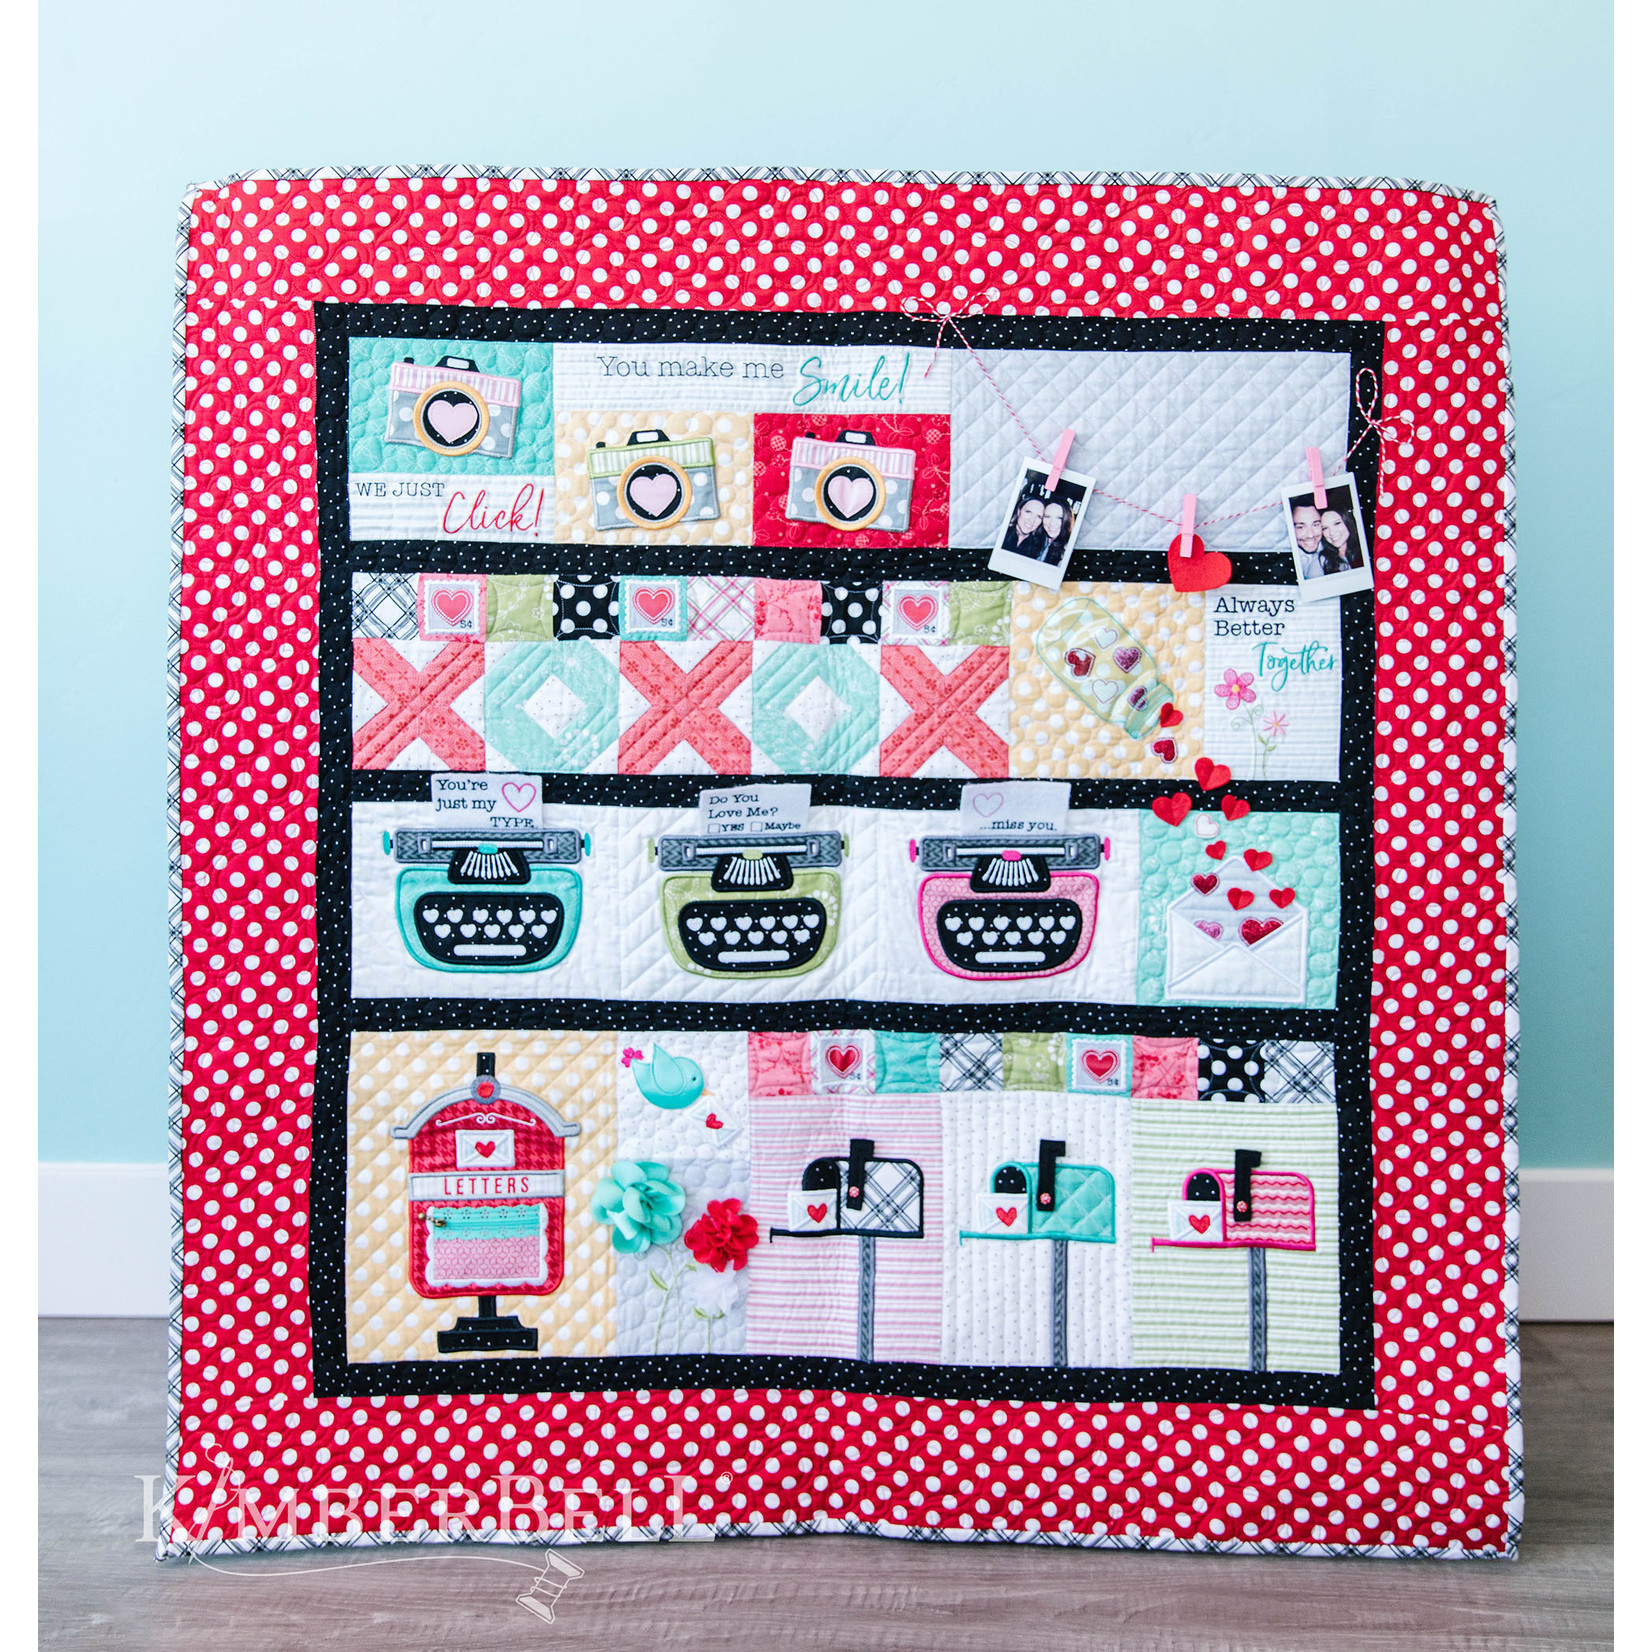 KIMBERBELL DESIGNS Love Notes Quilt - Full Kit (Pattern, Fabric, Backing, and Thread